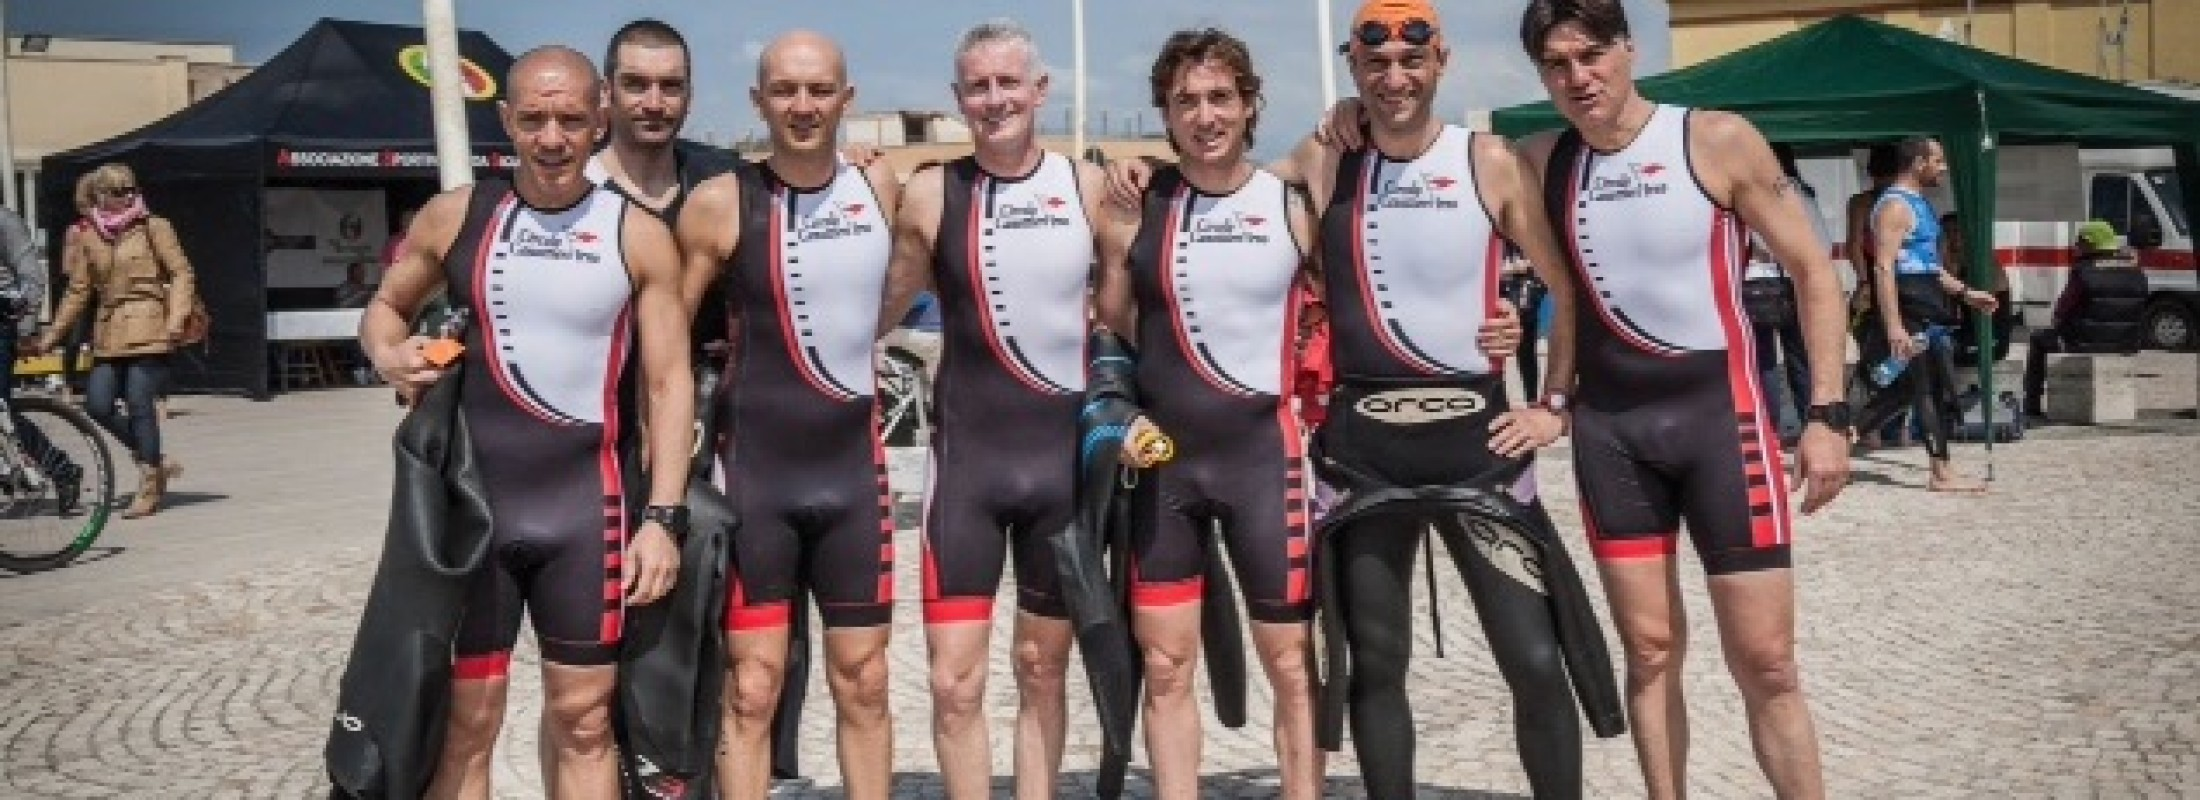 Triathlon, e vai!